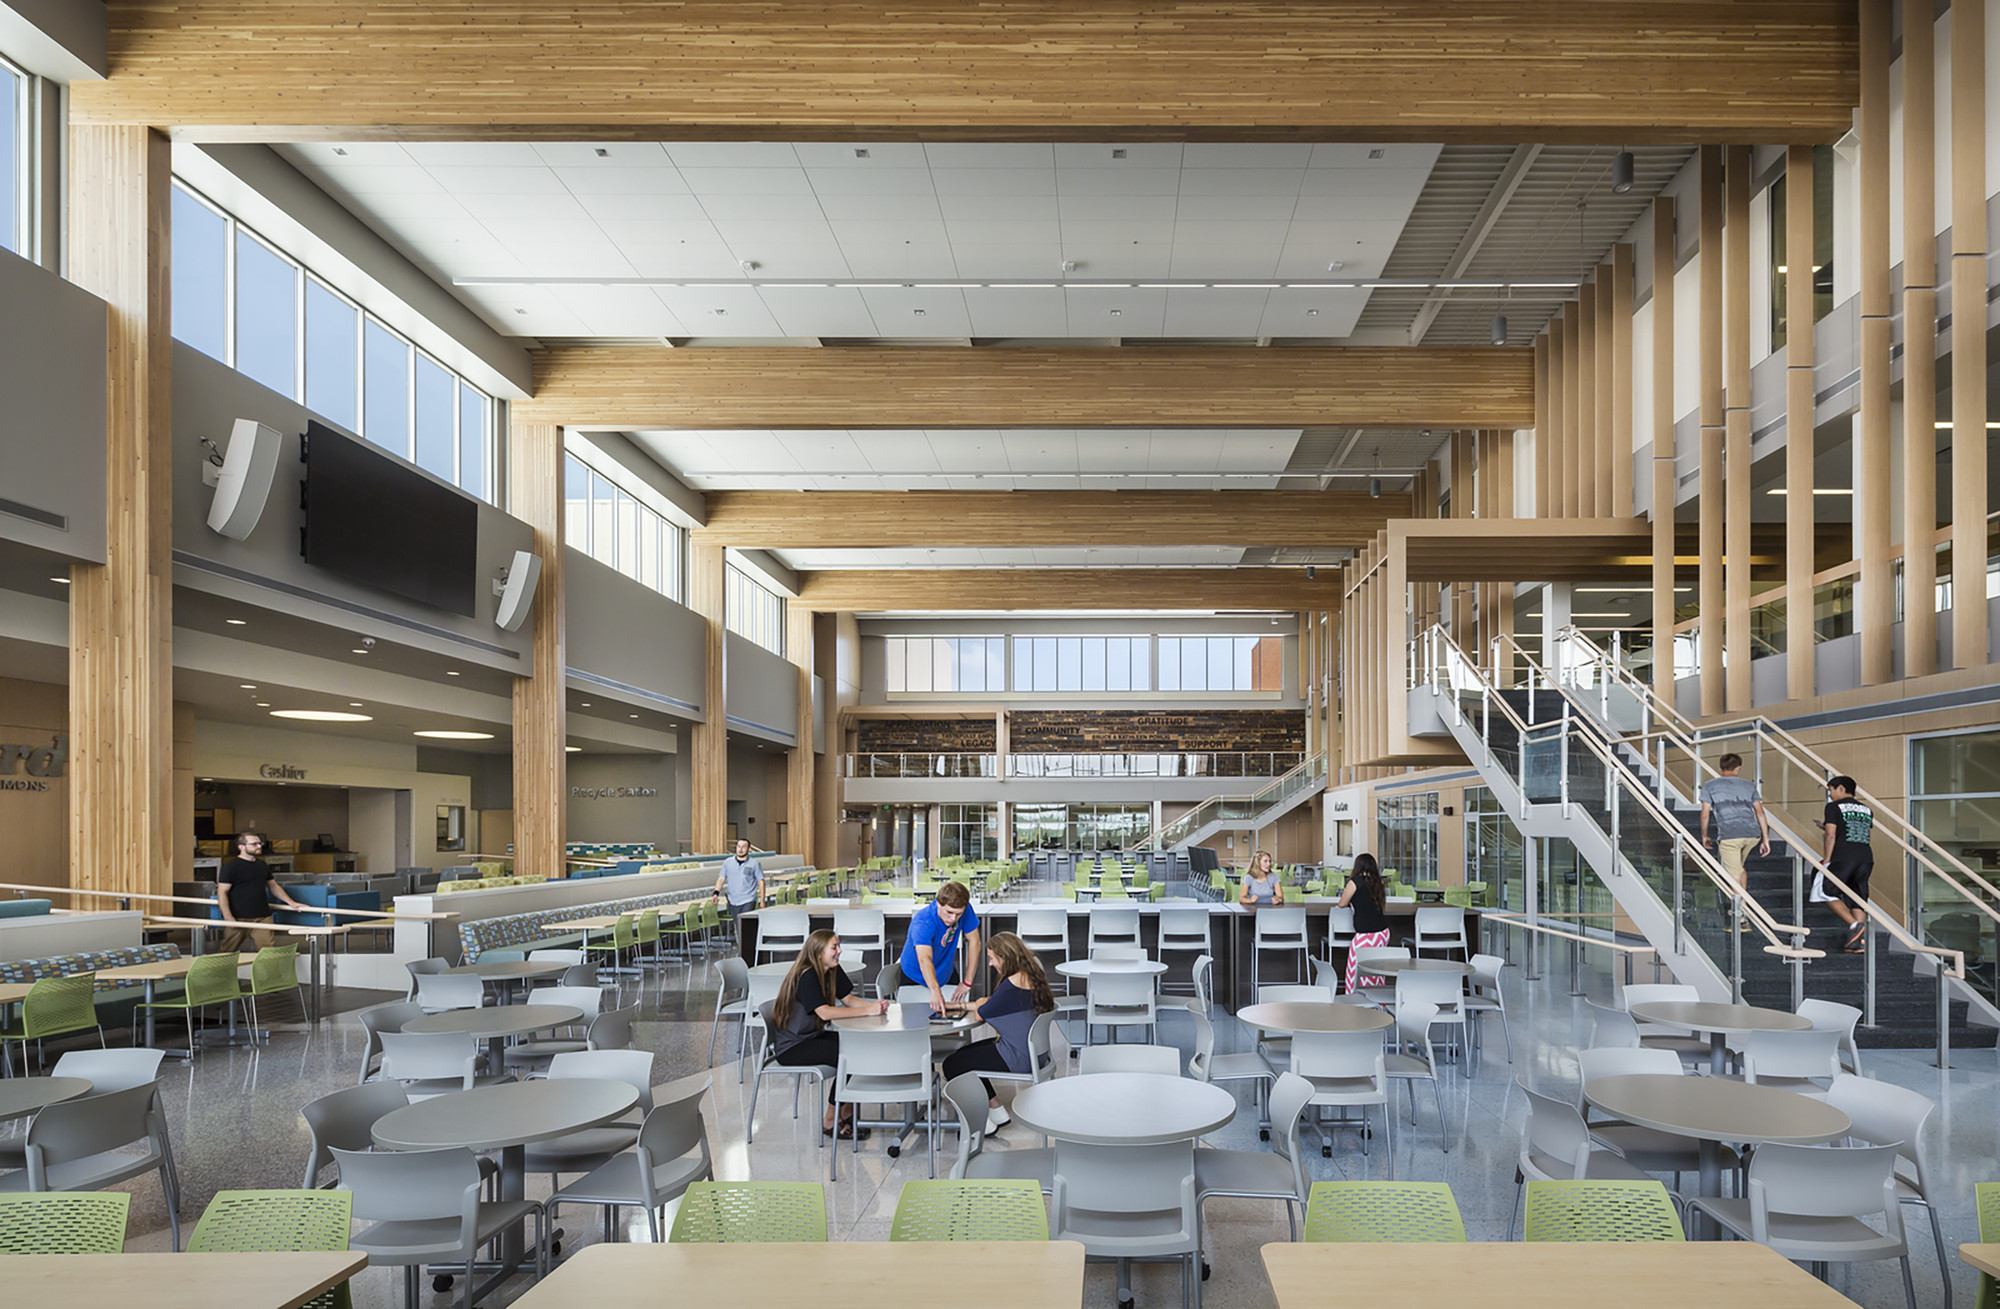 Alexandria Area High School / Cuningham Group Architecture, © Corey Gaffer